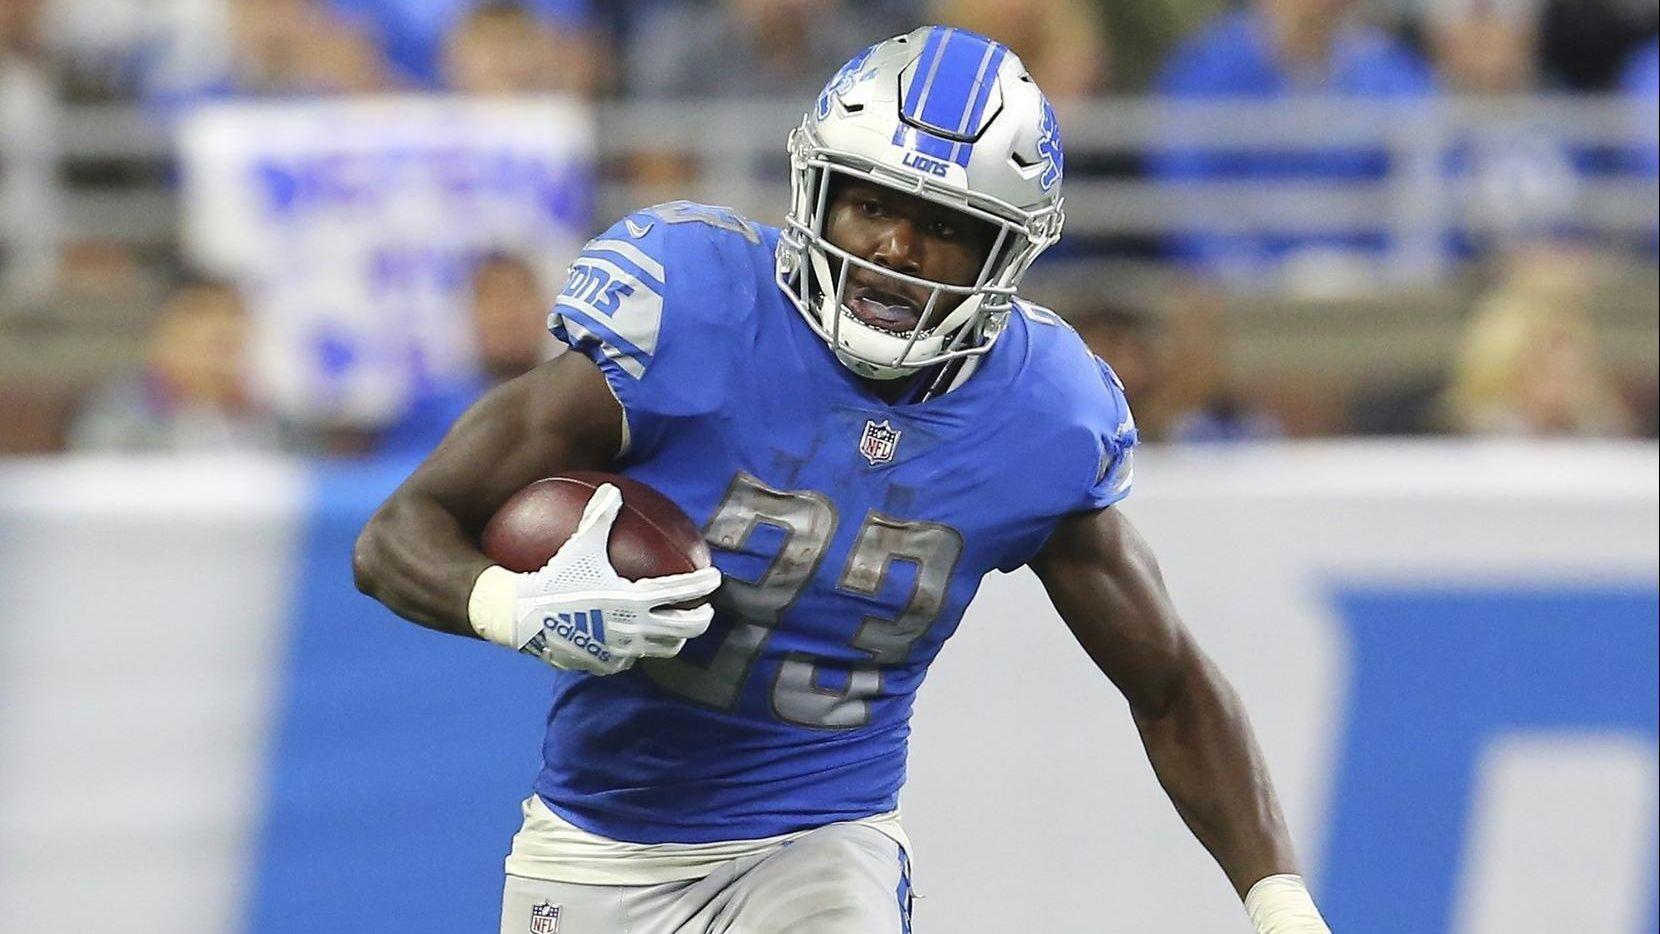 Scouting Report On Lions Rookie Running Back Kerryon Johnson They